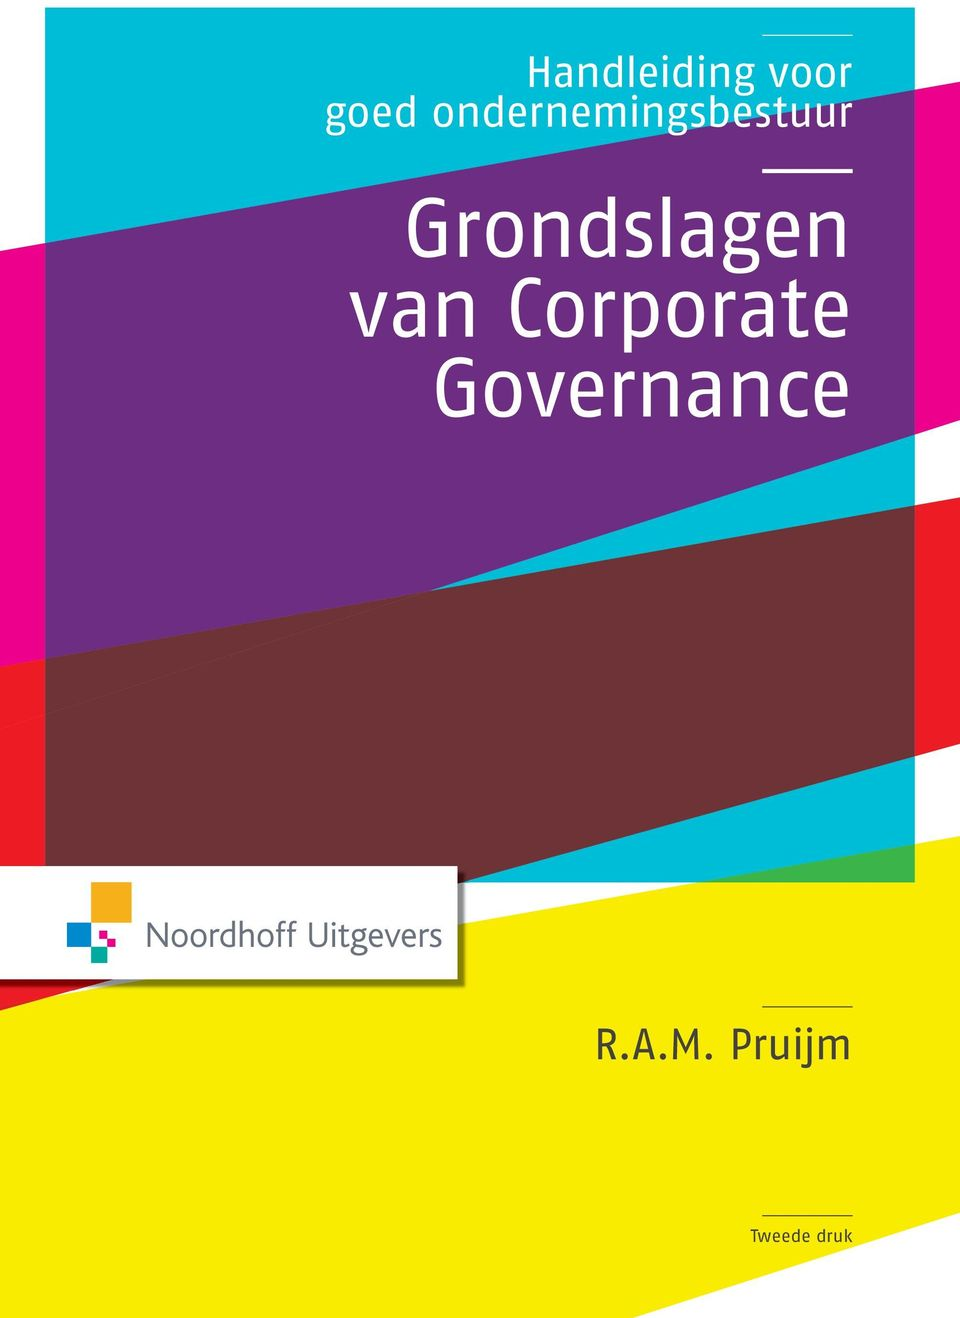 Grondslagen van Corporate